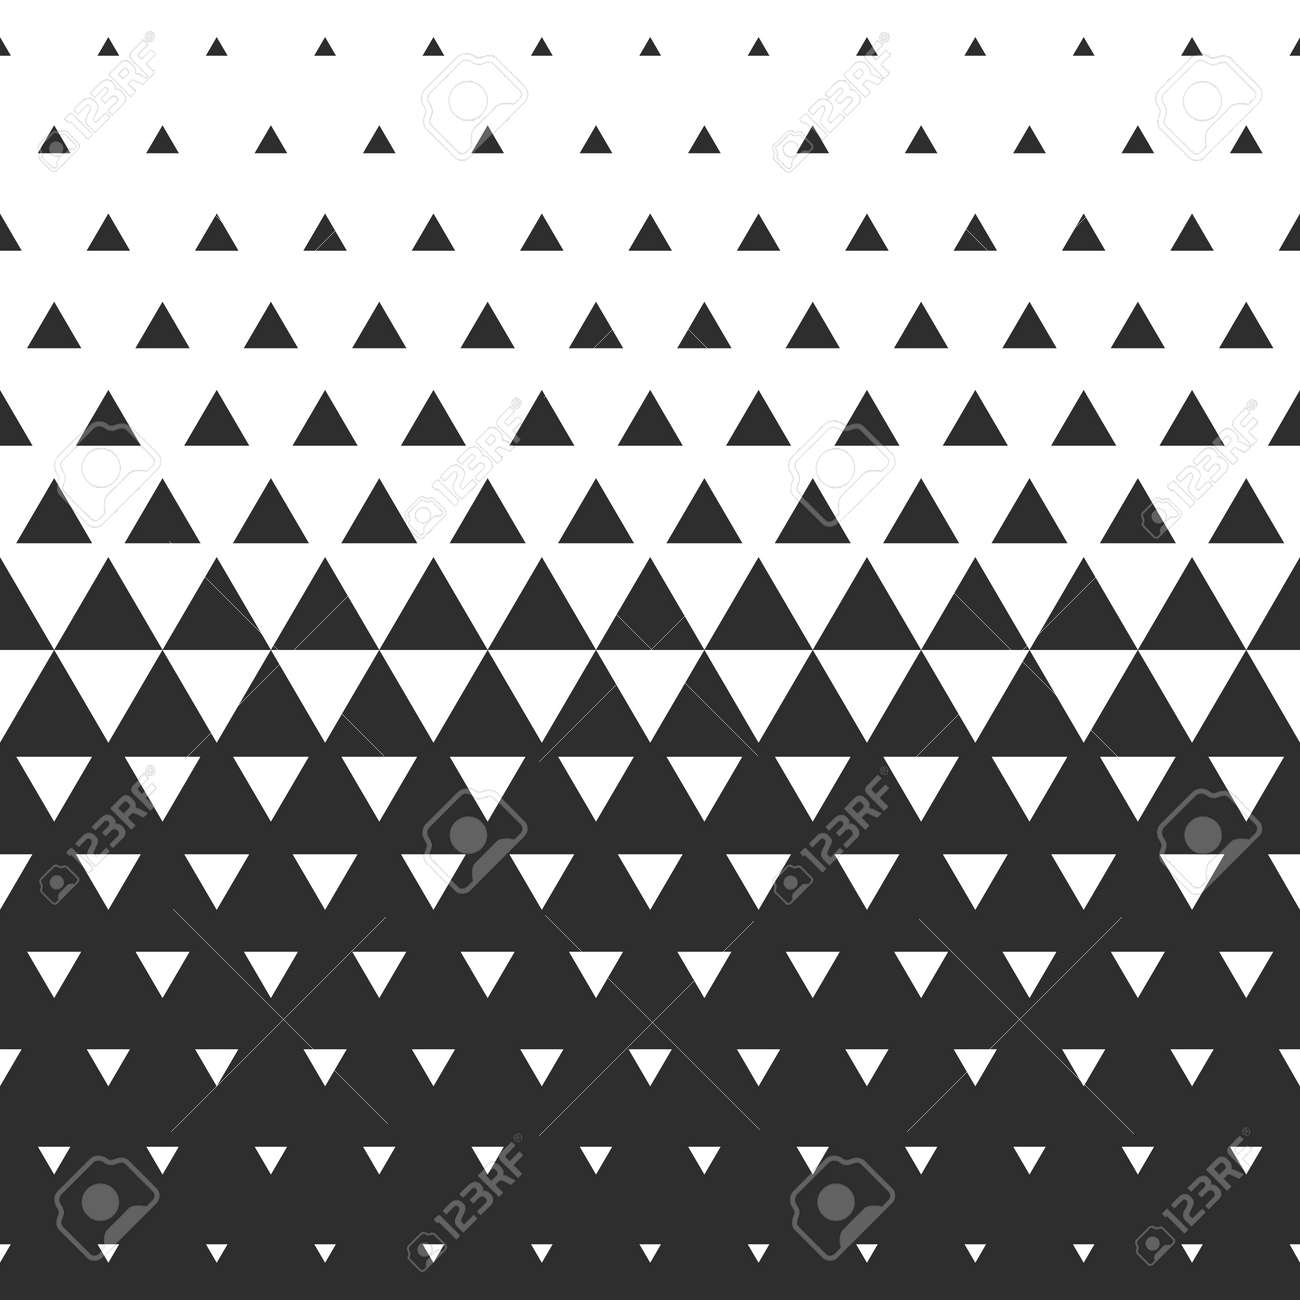 Vector Halftone Abstract Transition Triangular Pattern Wallpaper